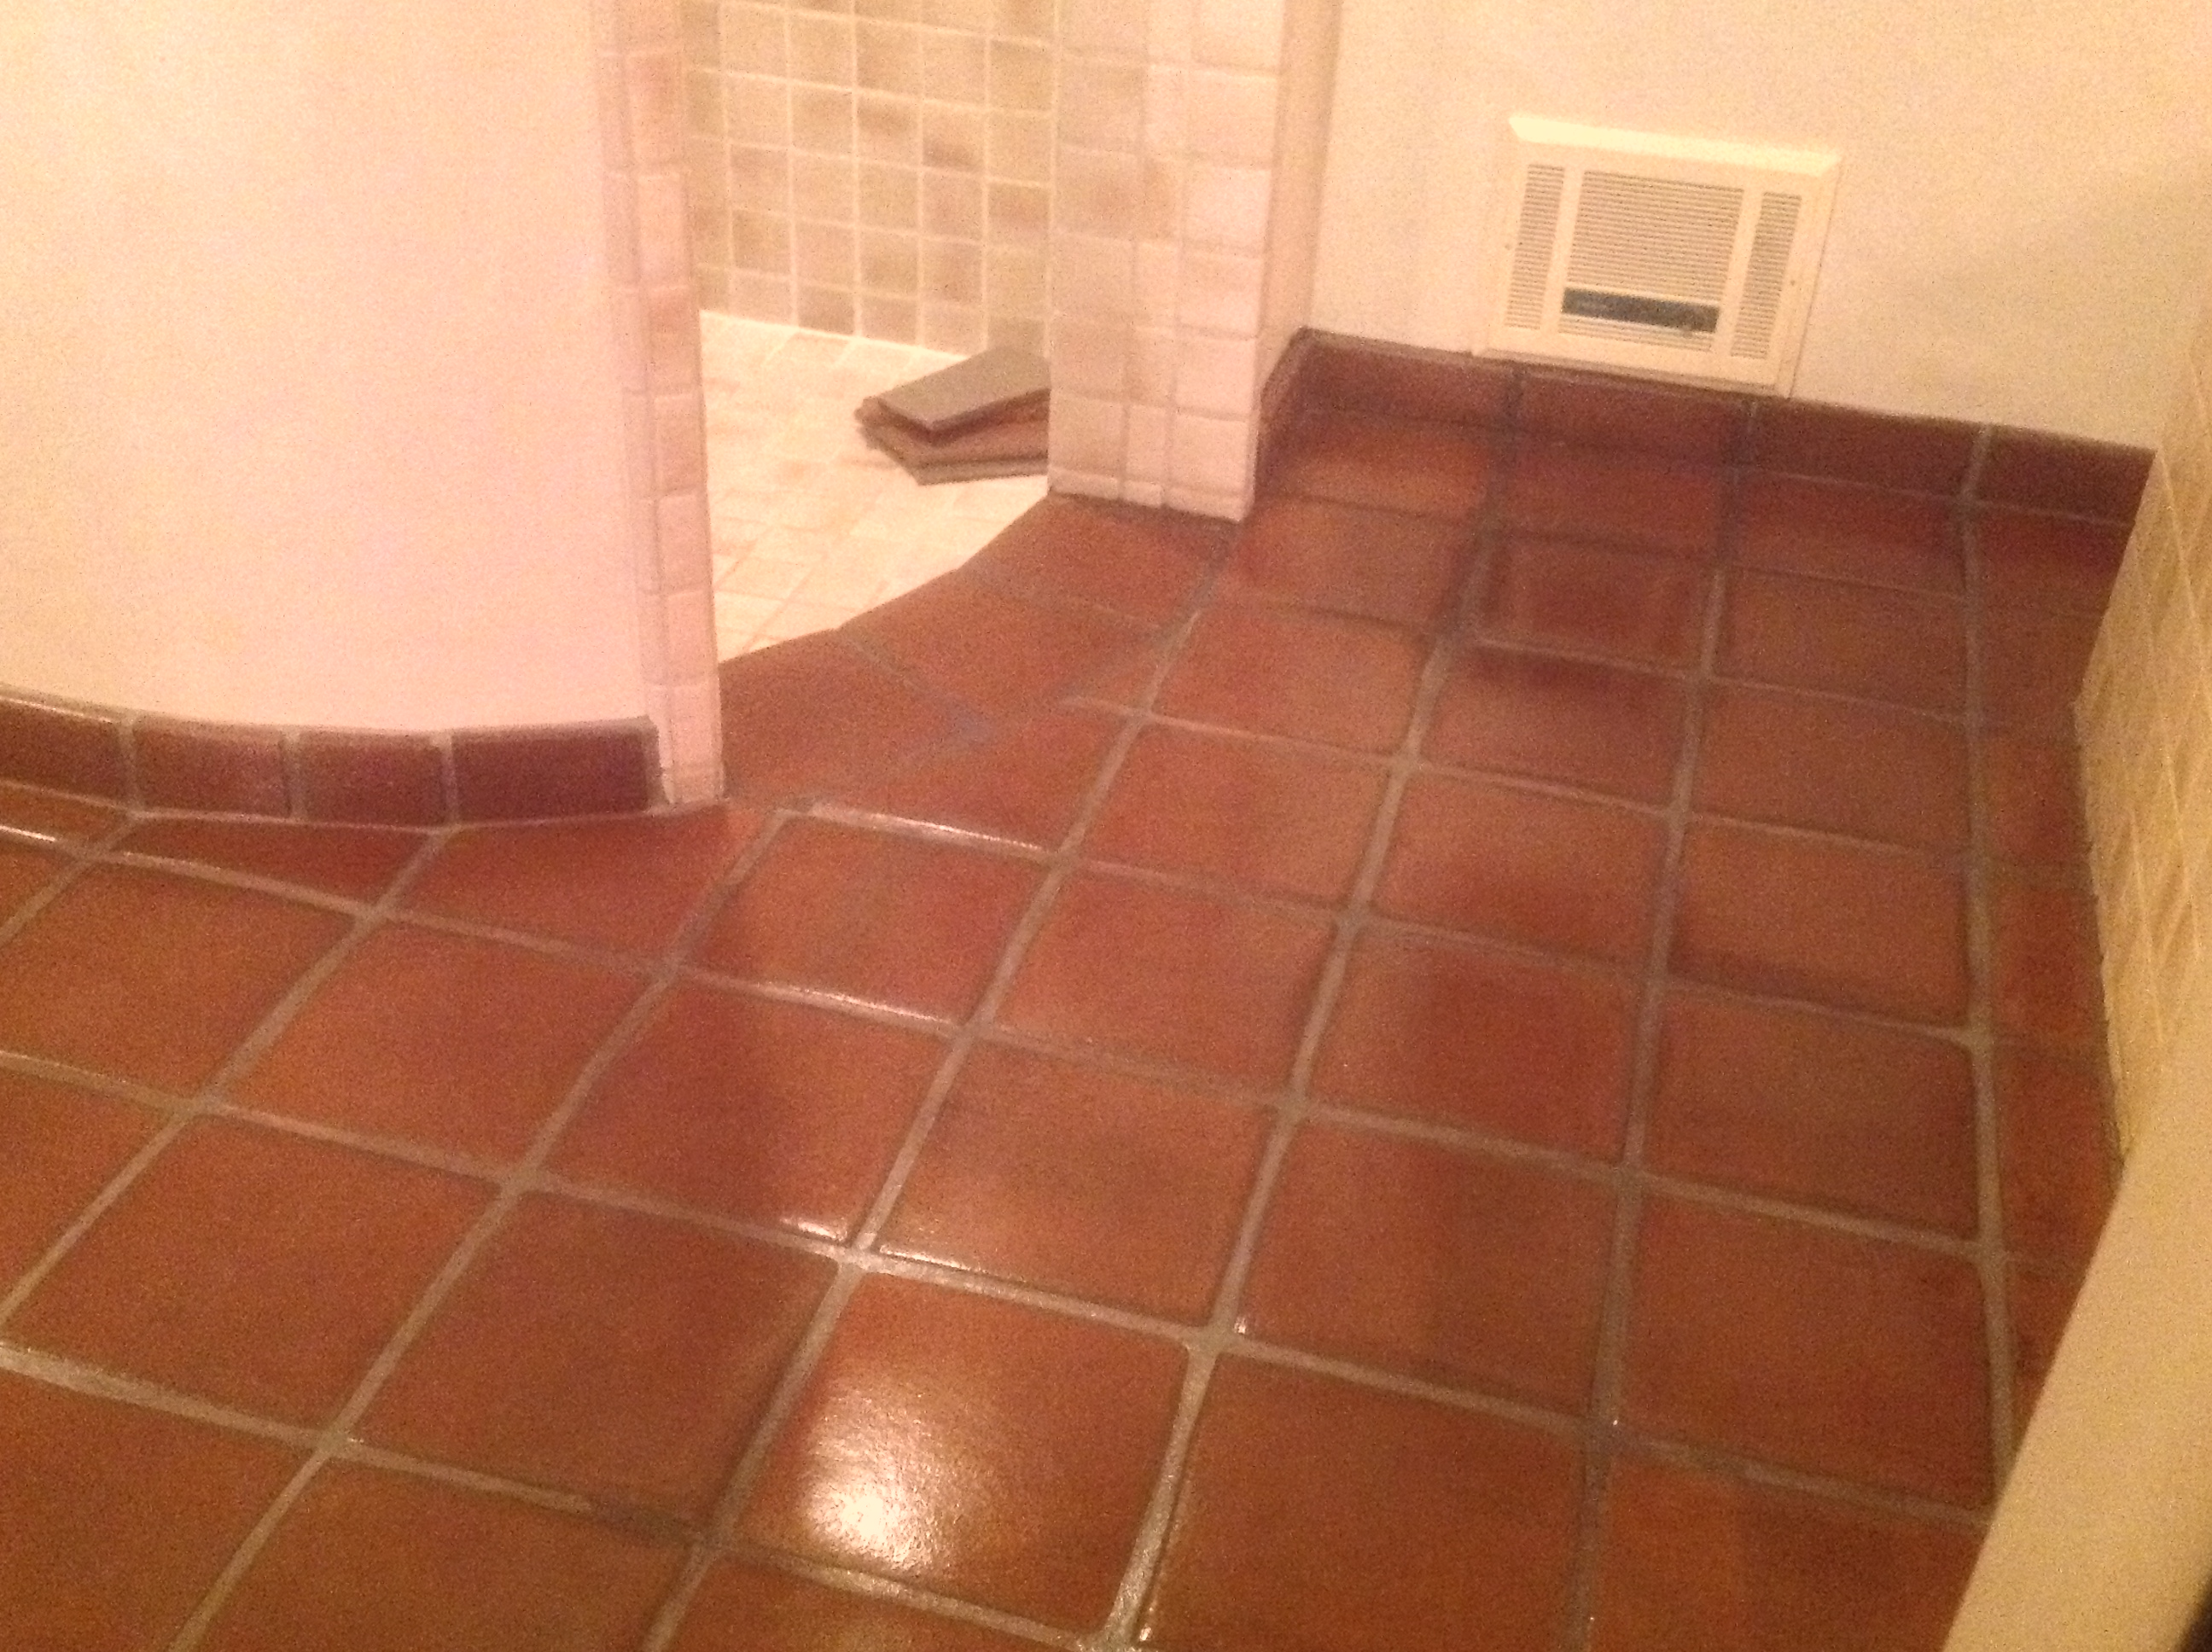 Clay Exterior Floor Tiles Lavish Home Design